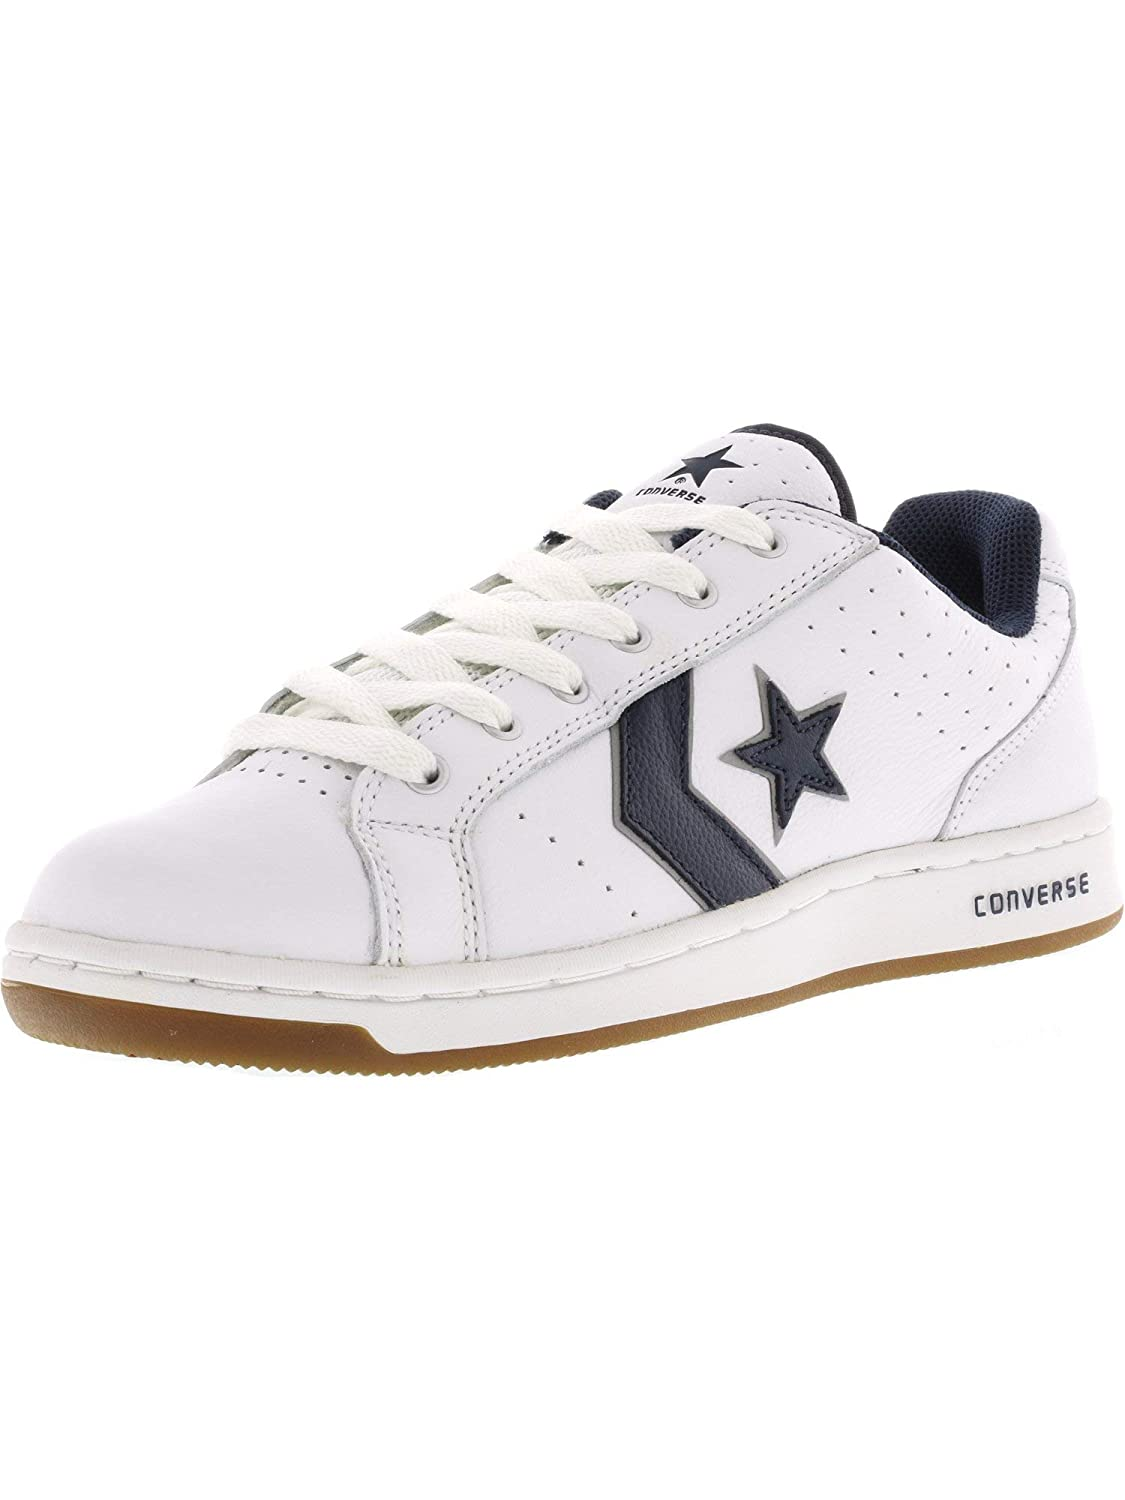 Converse Karve Ox Ankle-High Fashion Sneaker